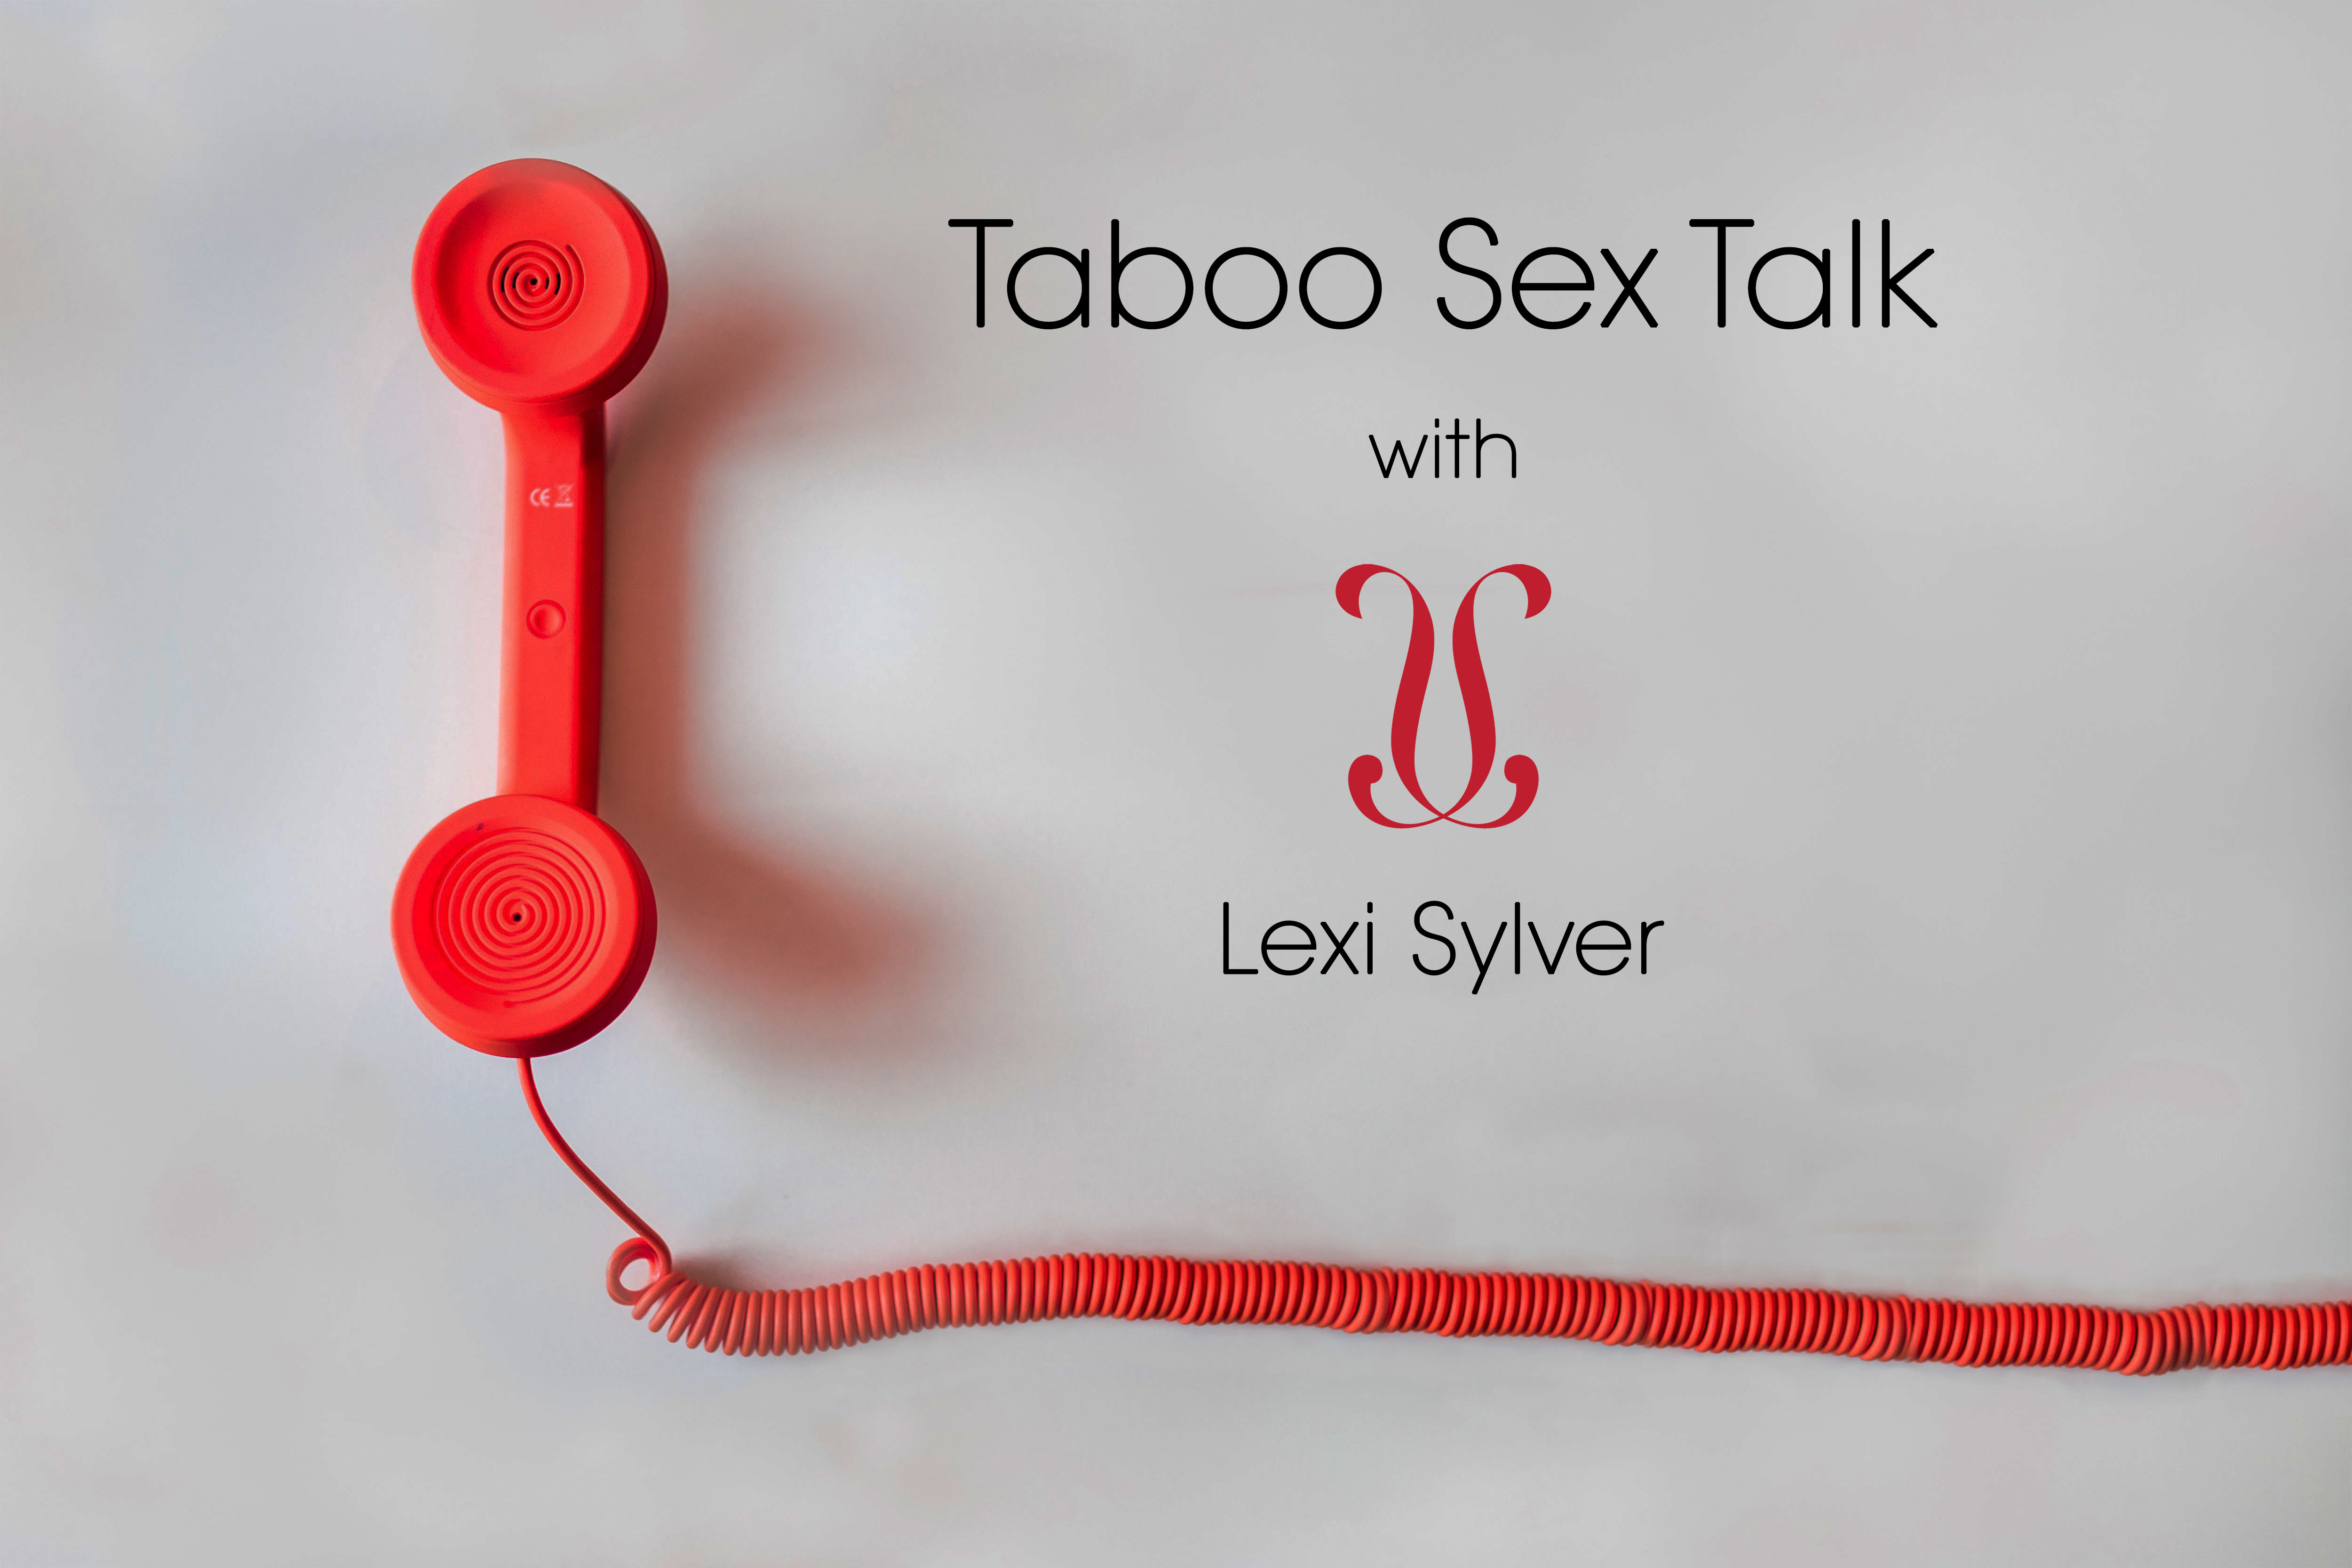 Taboo Sex Talk With Lexi Sylver | The Sexy Lifestyle with Carol and David